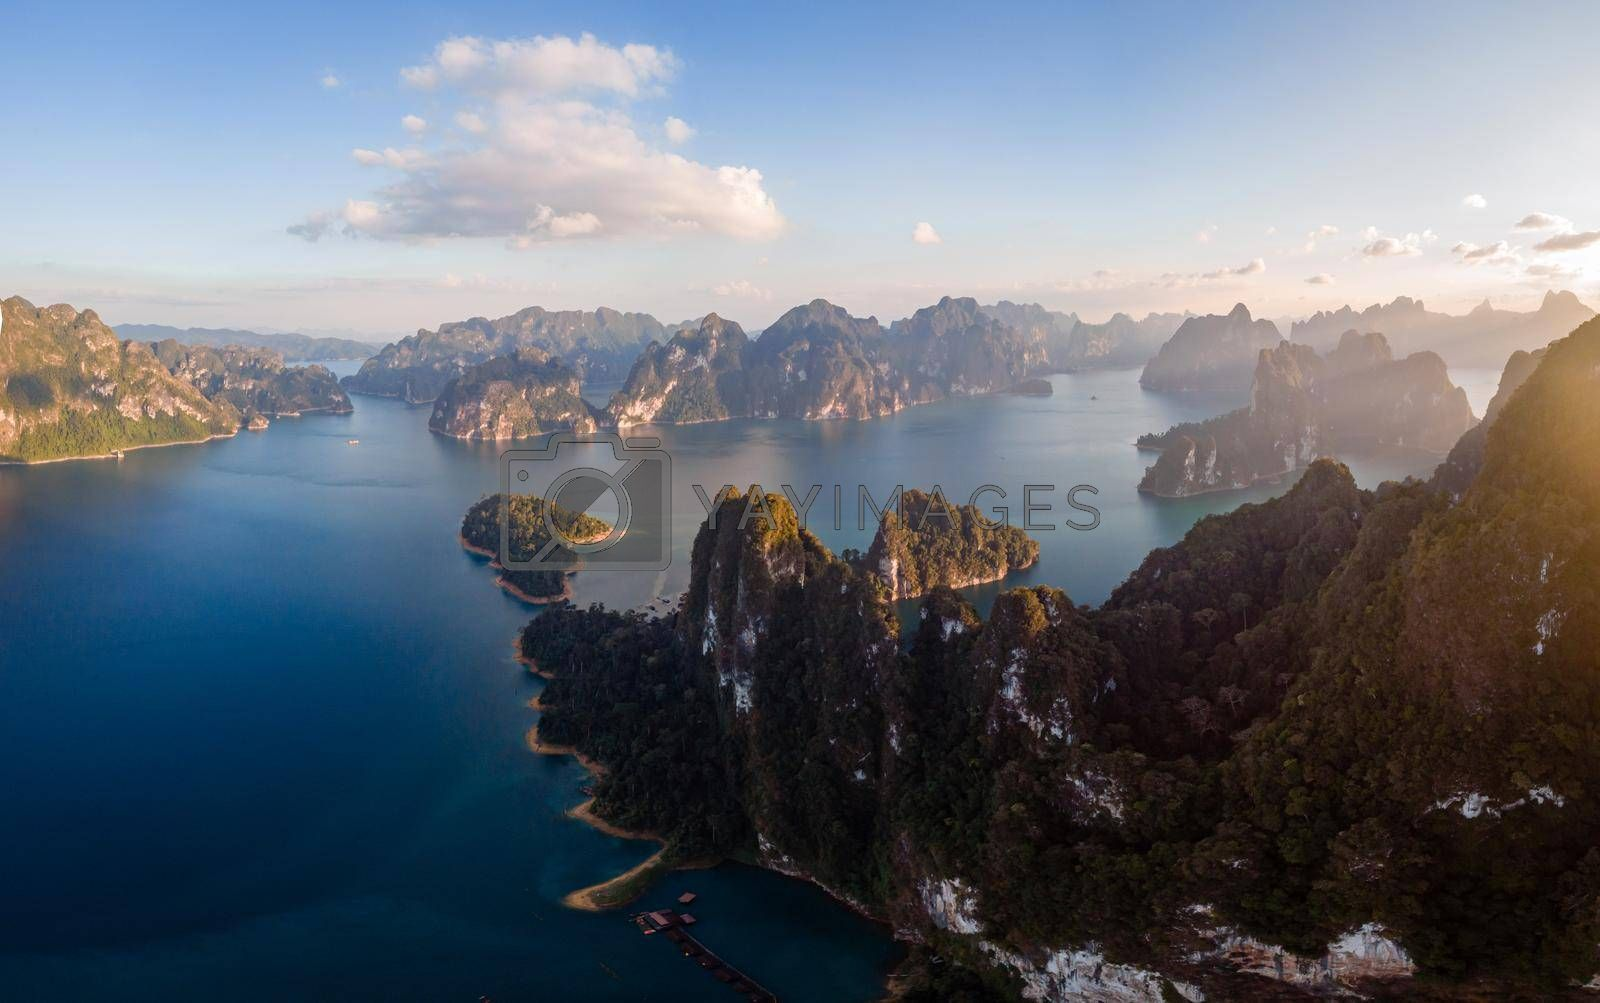 Khao Sok Thailand, Scenic mountains on the lake in Khao Sok National Park, Drone aerial shot, top view of Khao Sok National Park. South East Asia